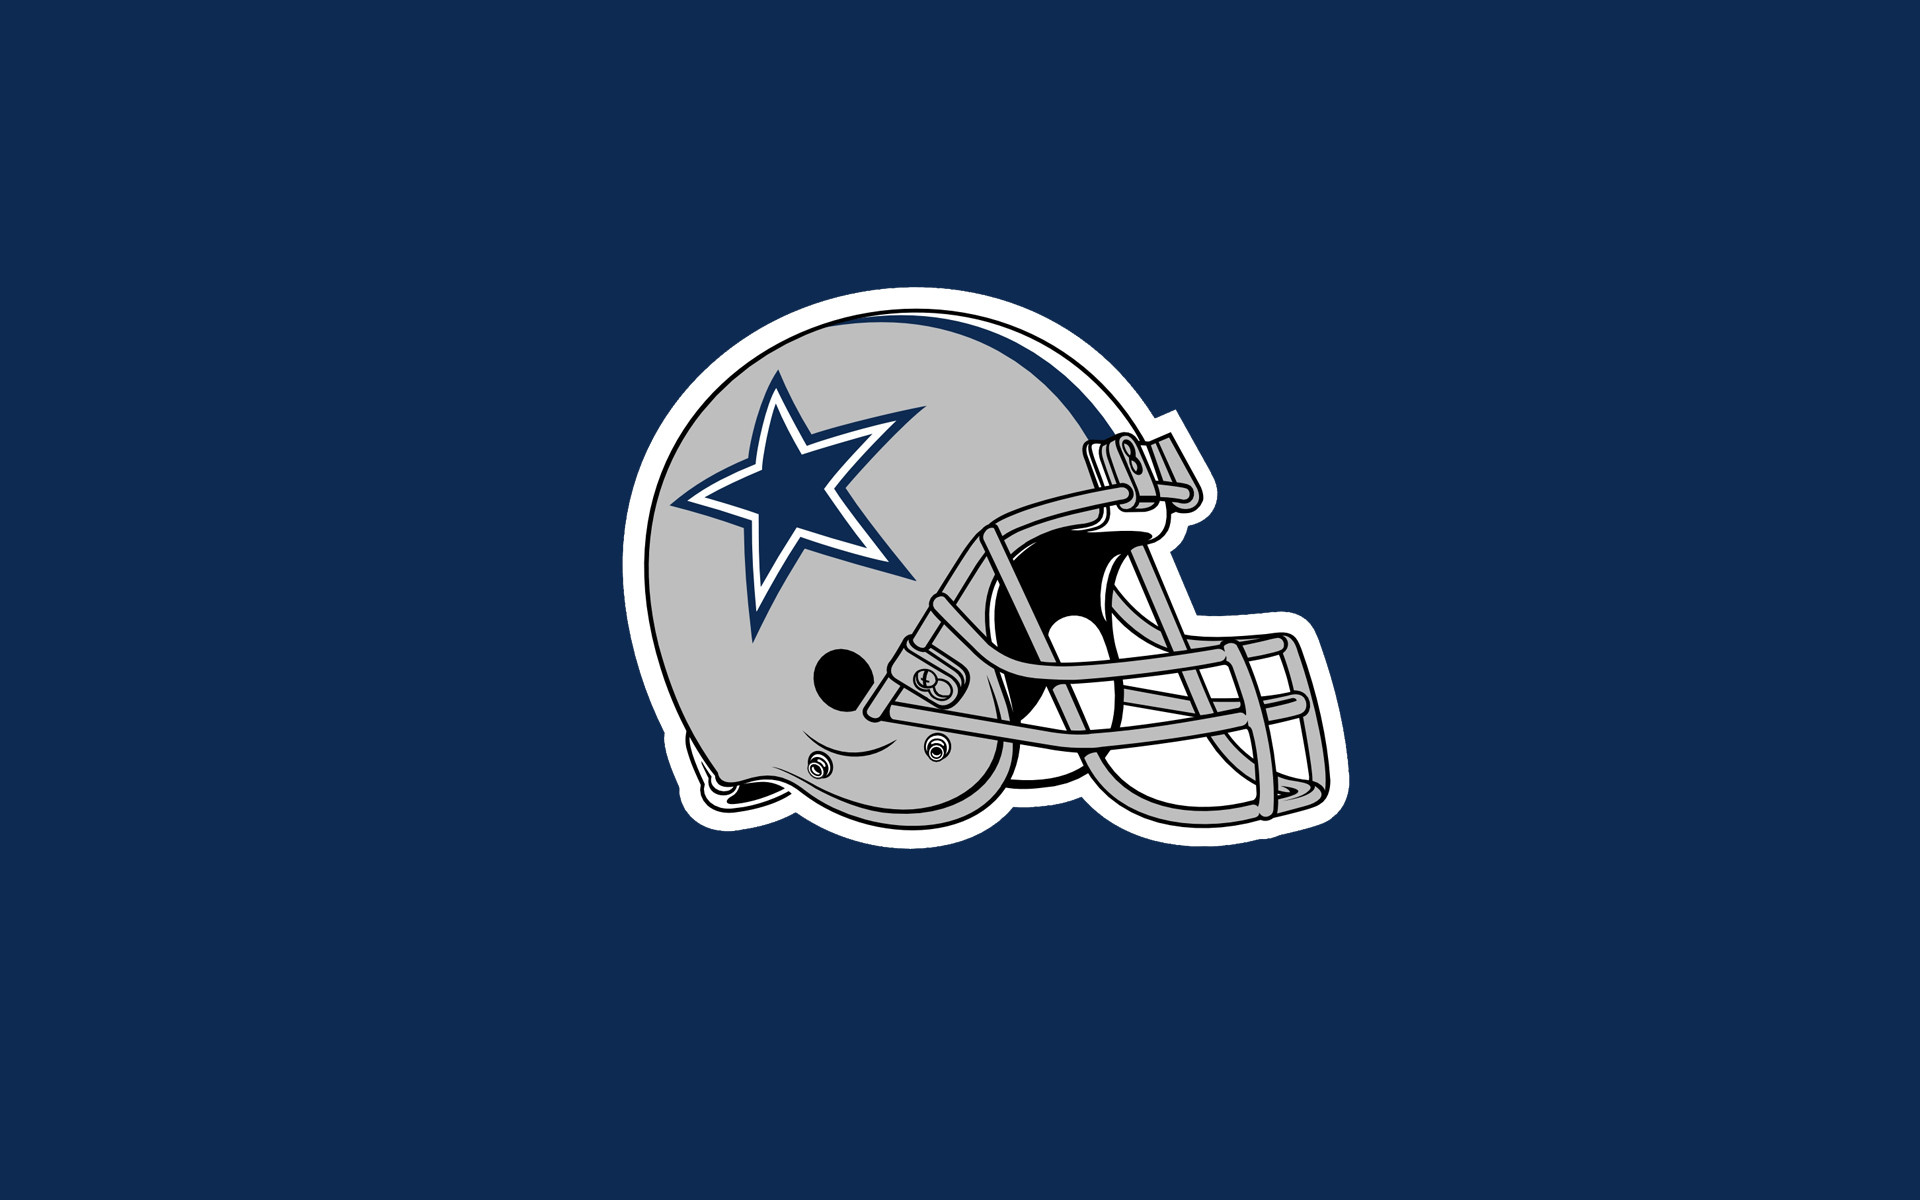 1920x1200 Dallas Cowboys Helmet Wallpapers Group (50+)